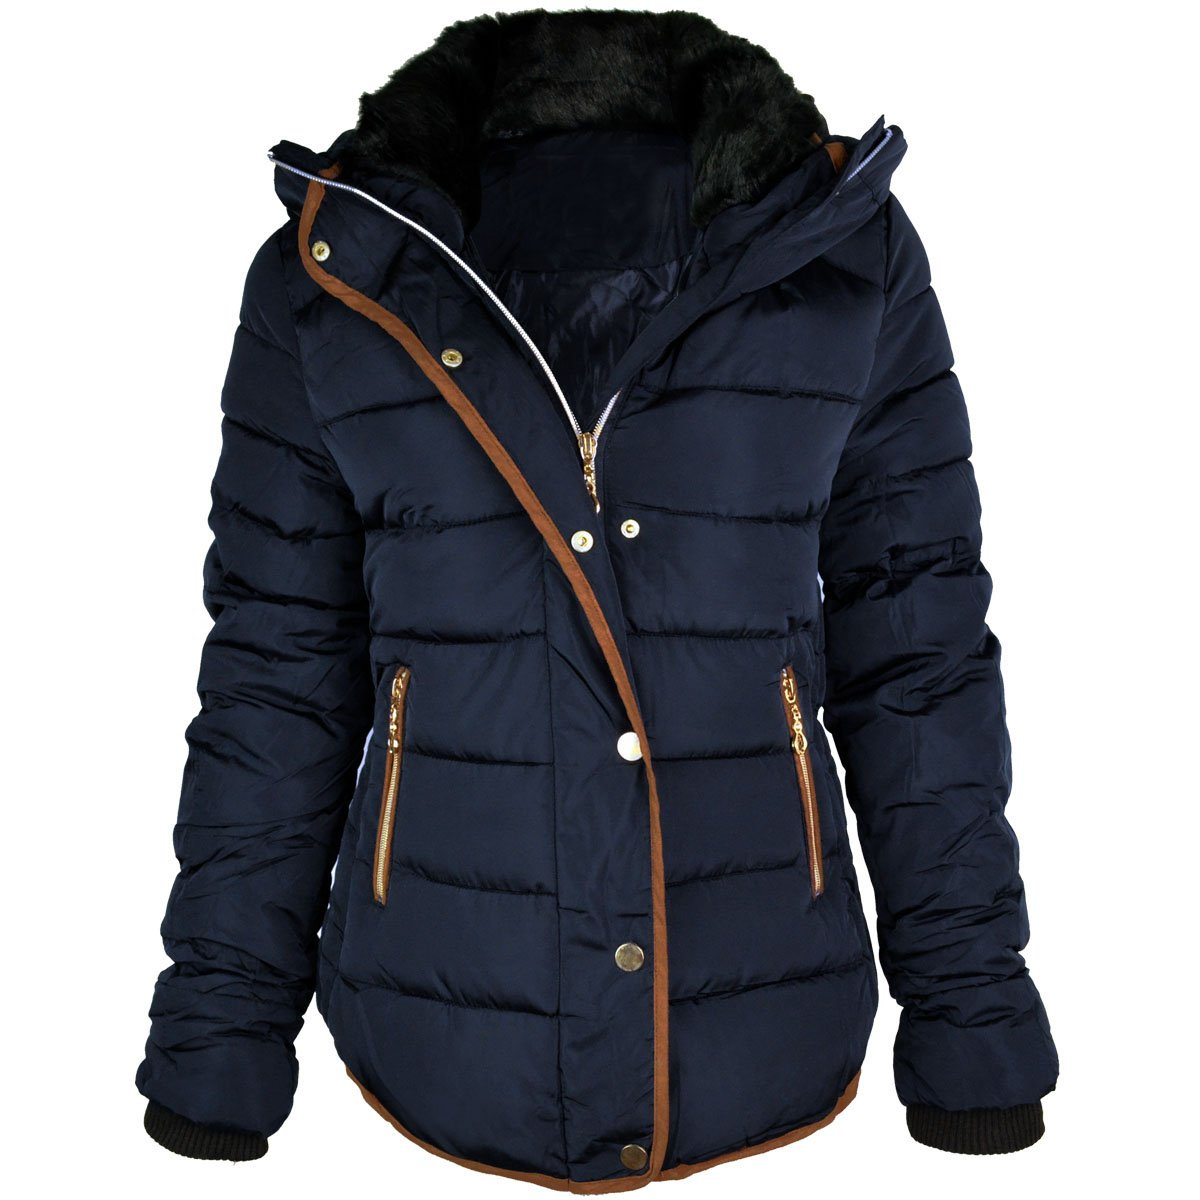 Fashion Thirsty Women's Quilted Hooded Winter Puffer Coat at ...